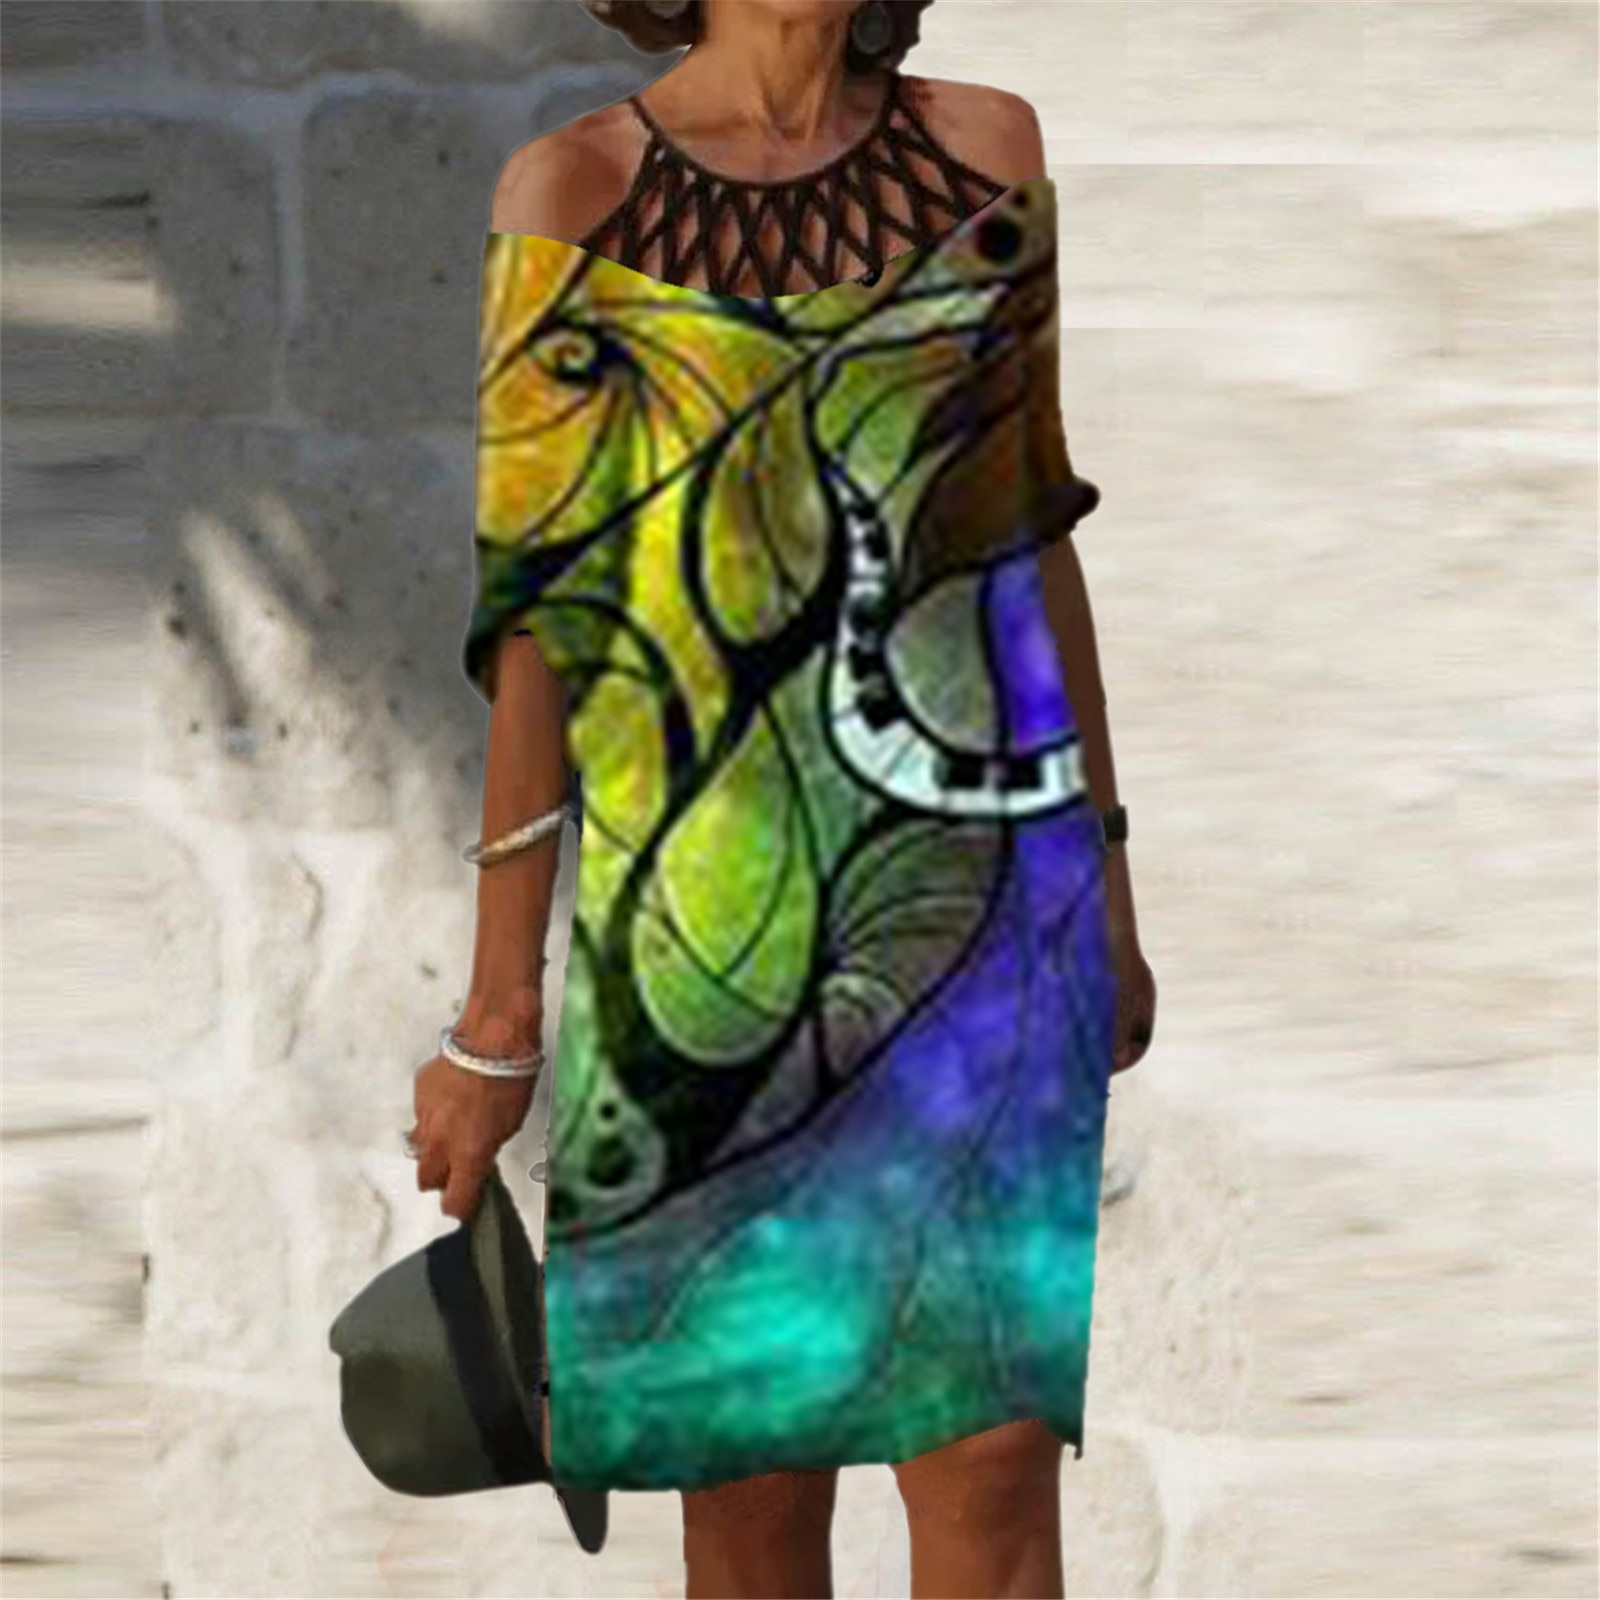 40# Halter Dress Plus Size Tie-dye Print Dress Woman Medium Length Sleeve Dresses For Women 2021 Harajuku Vestido De Mujer